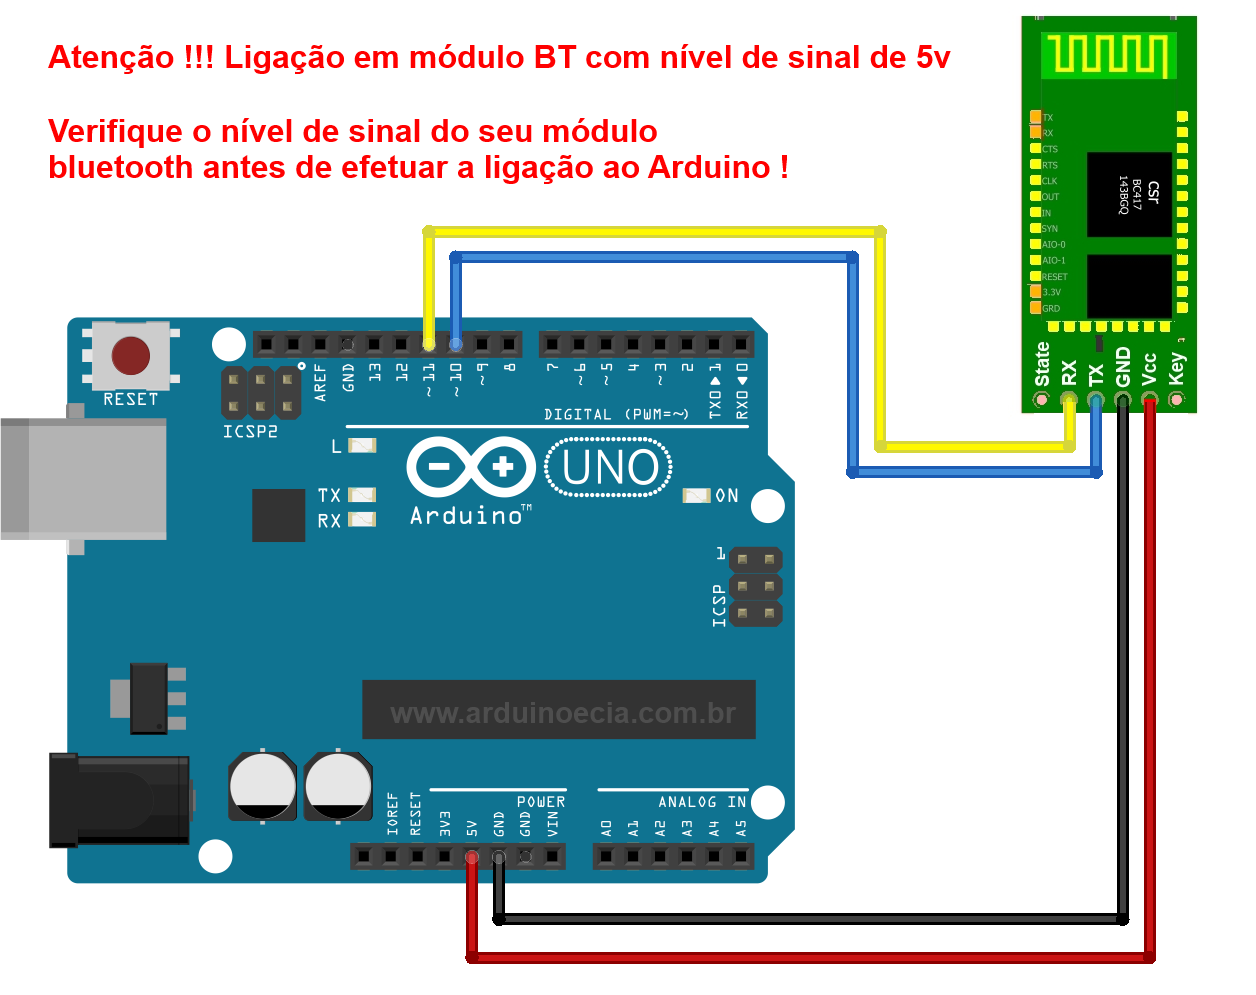 Arduino connected to an Android phone via Bluetooth